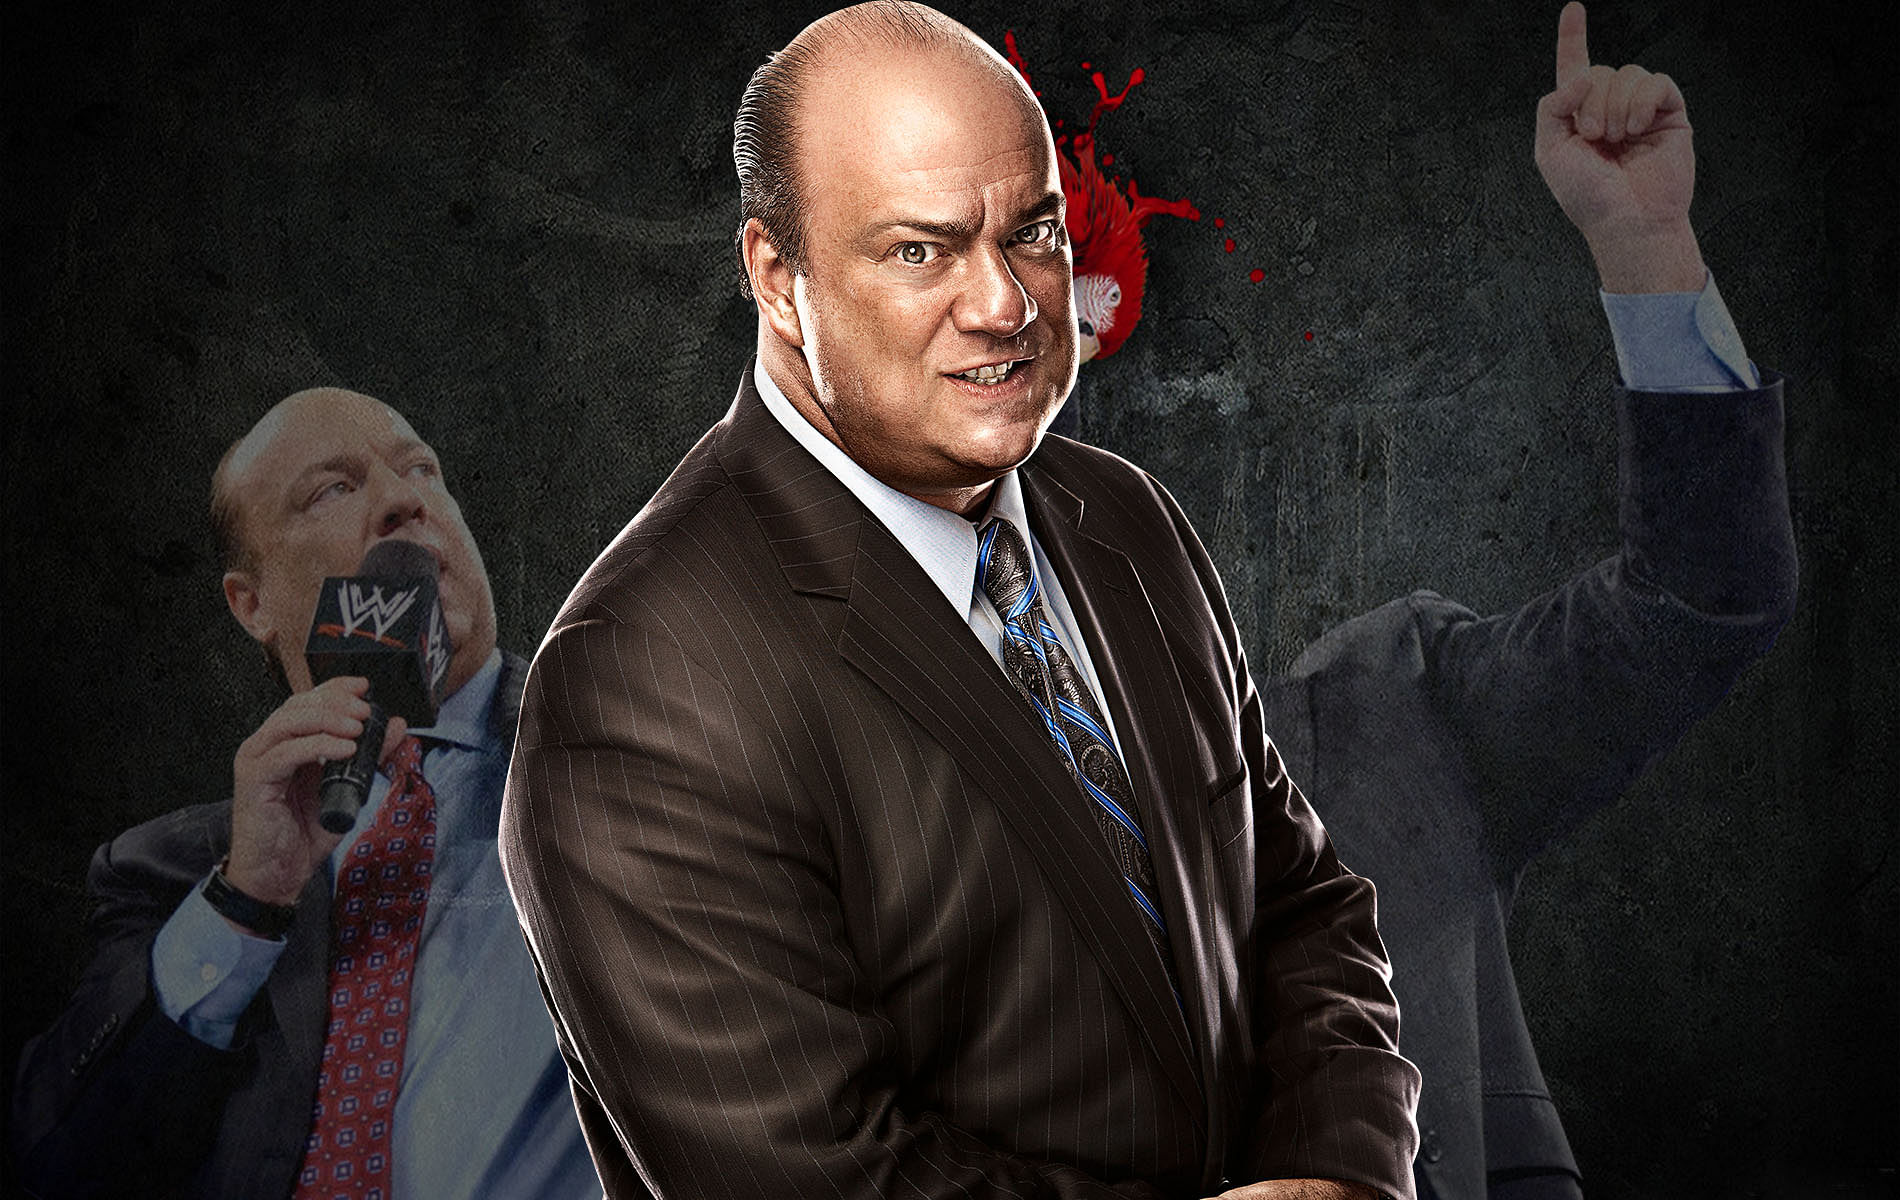 Leave the selling to Paul Heyman – Why he is the best manager in pro wrestling today